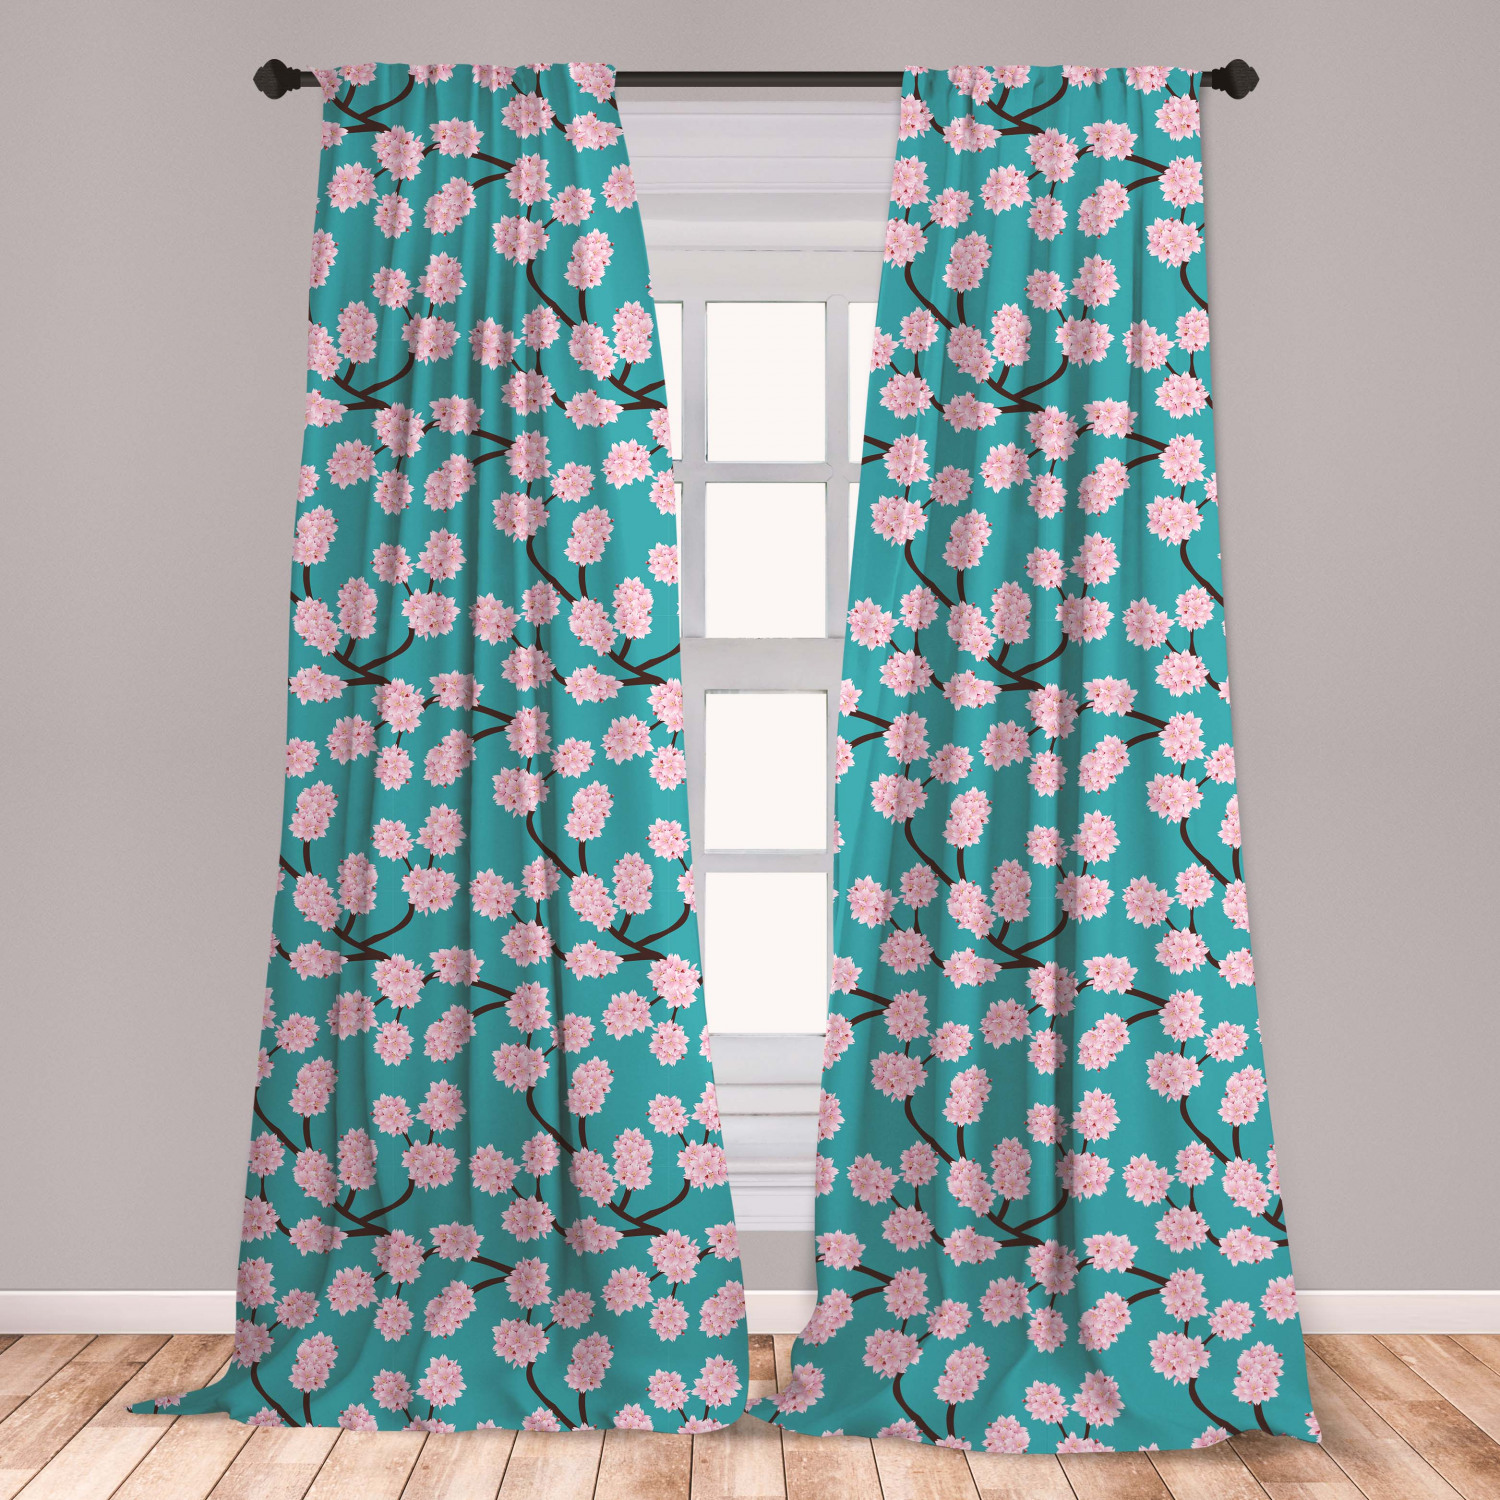 Cherry Microfiber Curtains 2 Panel Set Living Room Bedroom in 3 Sizes